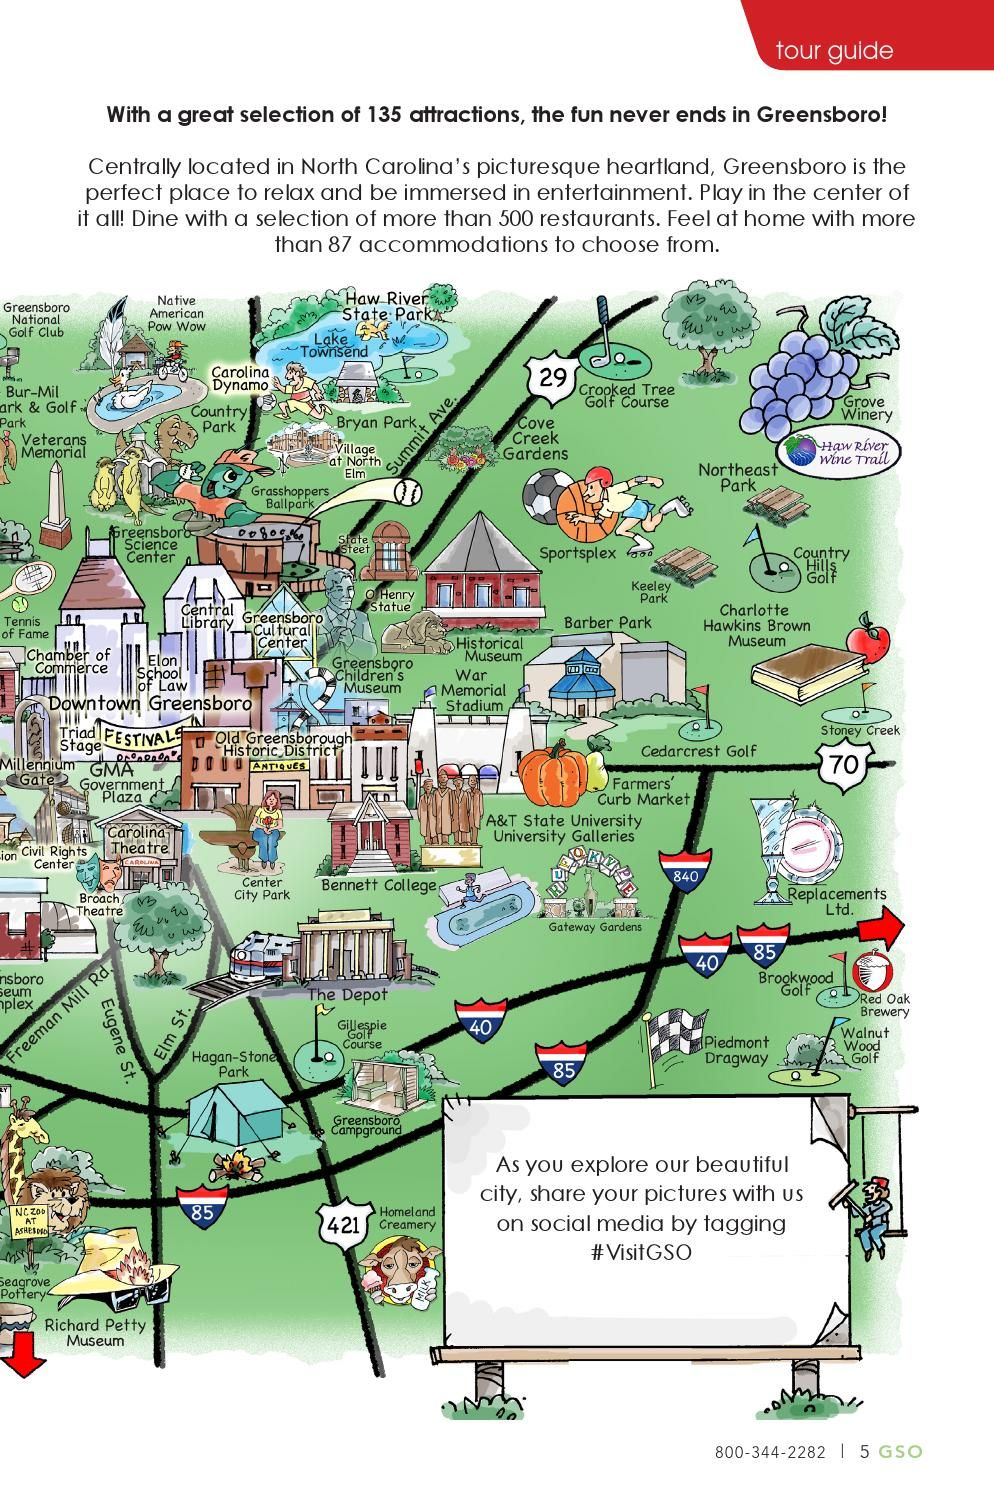 2016 Greensboro, North Carolina Visitors Guide | North ... on map of clarksville nc, map of charlotte nc, map of north carolina, map of memphis tn, map of ogden nc, map of biltmore forest nc, map of griffin nc, map of raleigh nc, map of atlanta, map of bunnlevel nc, map of salemburg nc, map of saxapahaw nc, map of greenville nc, map of hog island nc, map of charlottesville nc, map of orange co nc, map of asheville nc, map of moyock nc, map of ferguson nc, map of columbus ga,